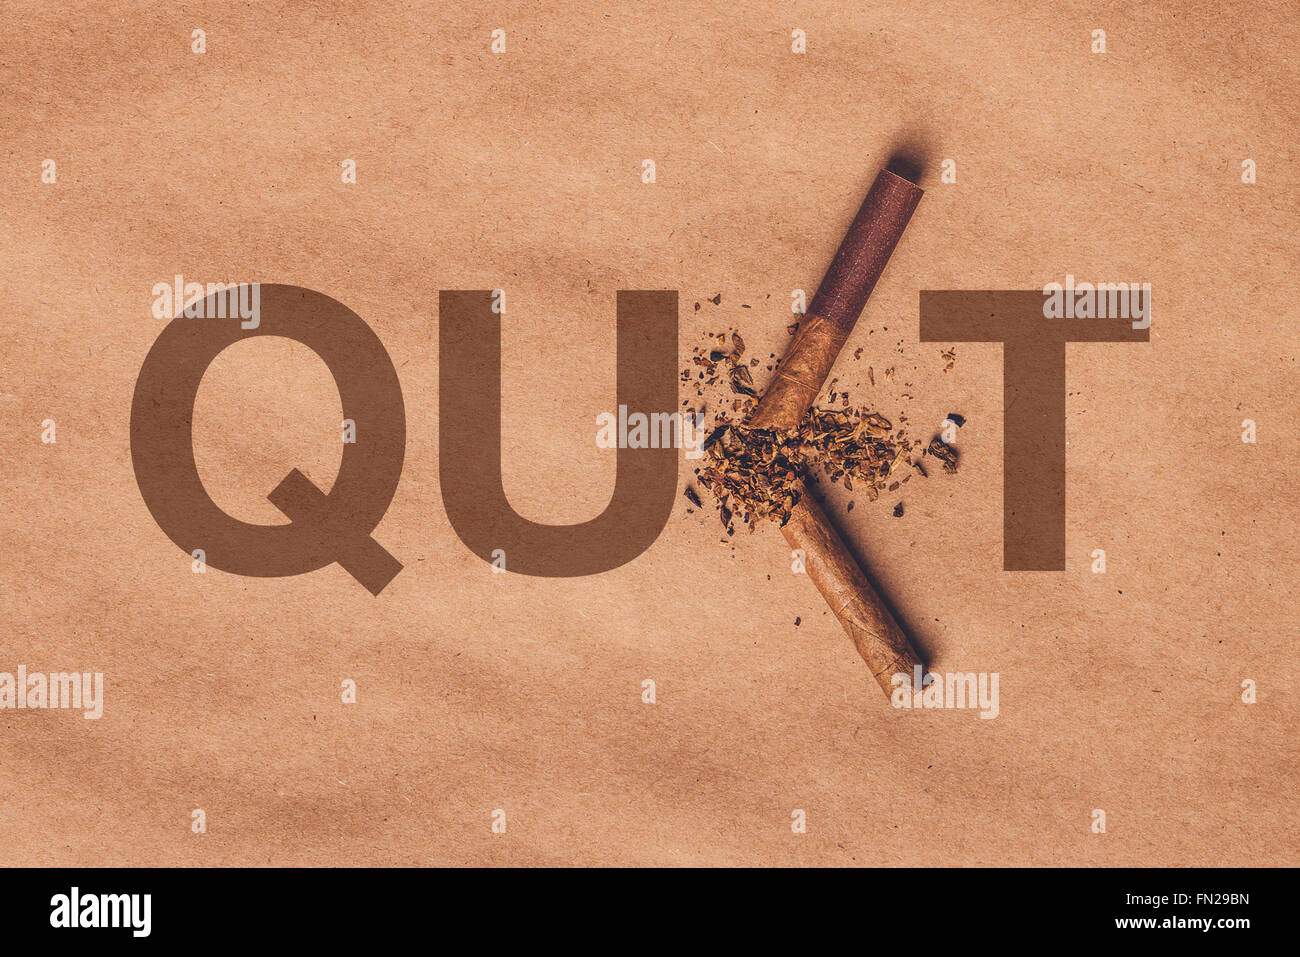 Broken cigarette top view over brown paper, quit smoking concept, warm retro image tone. - Stock Image